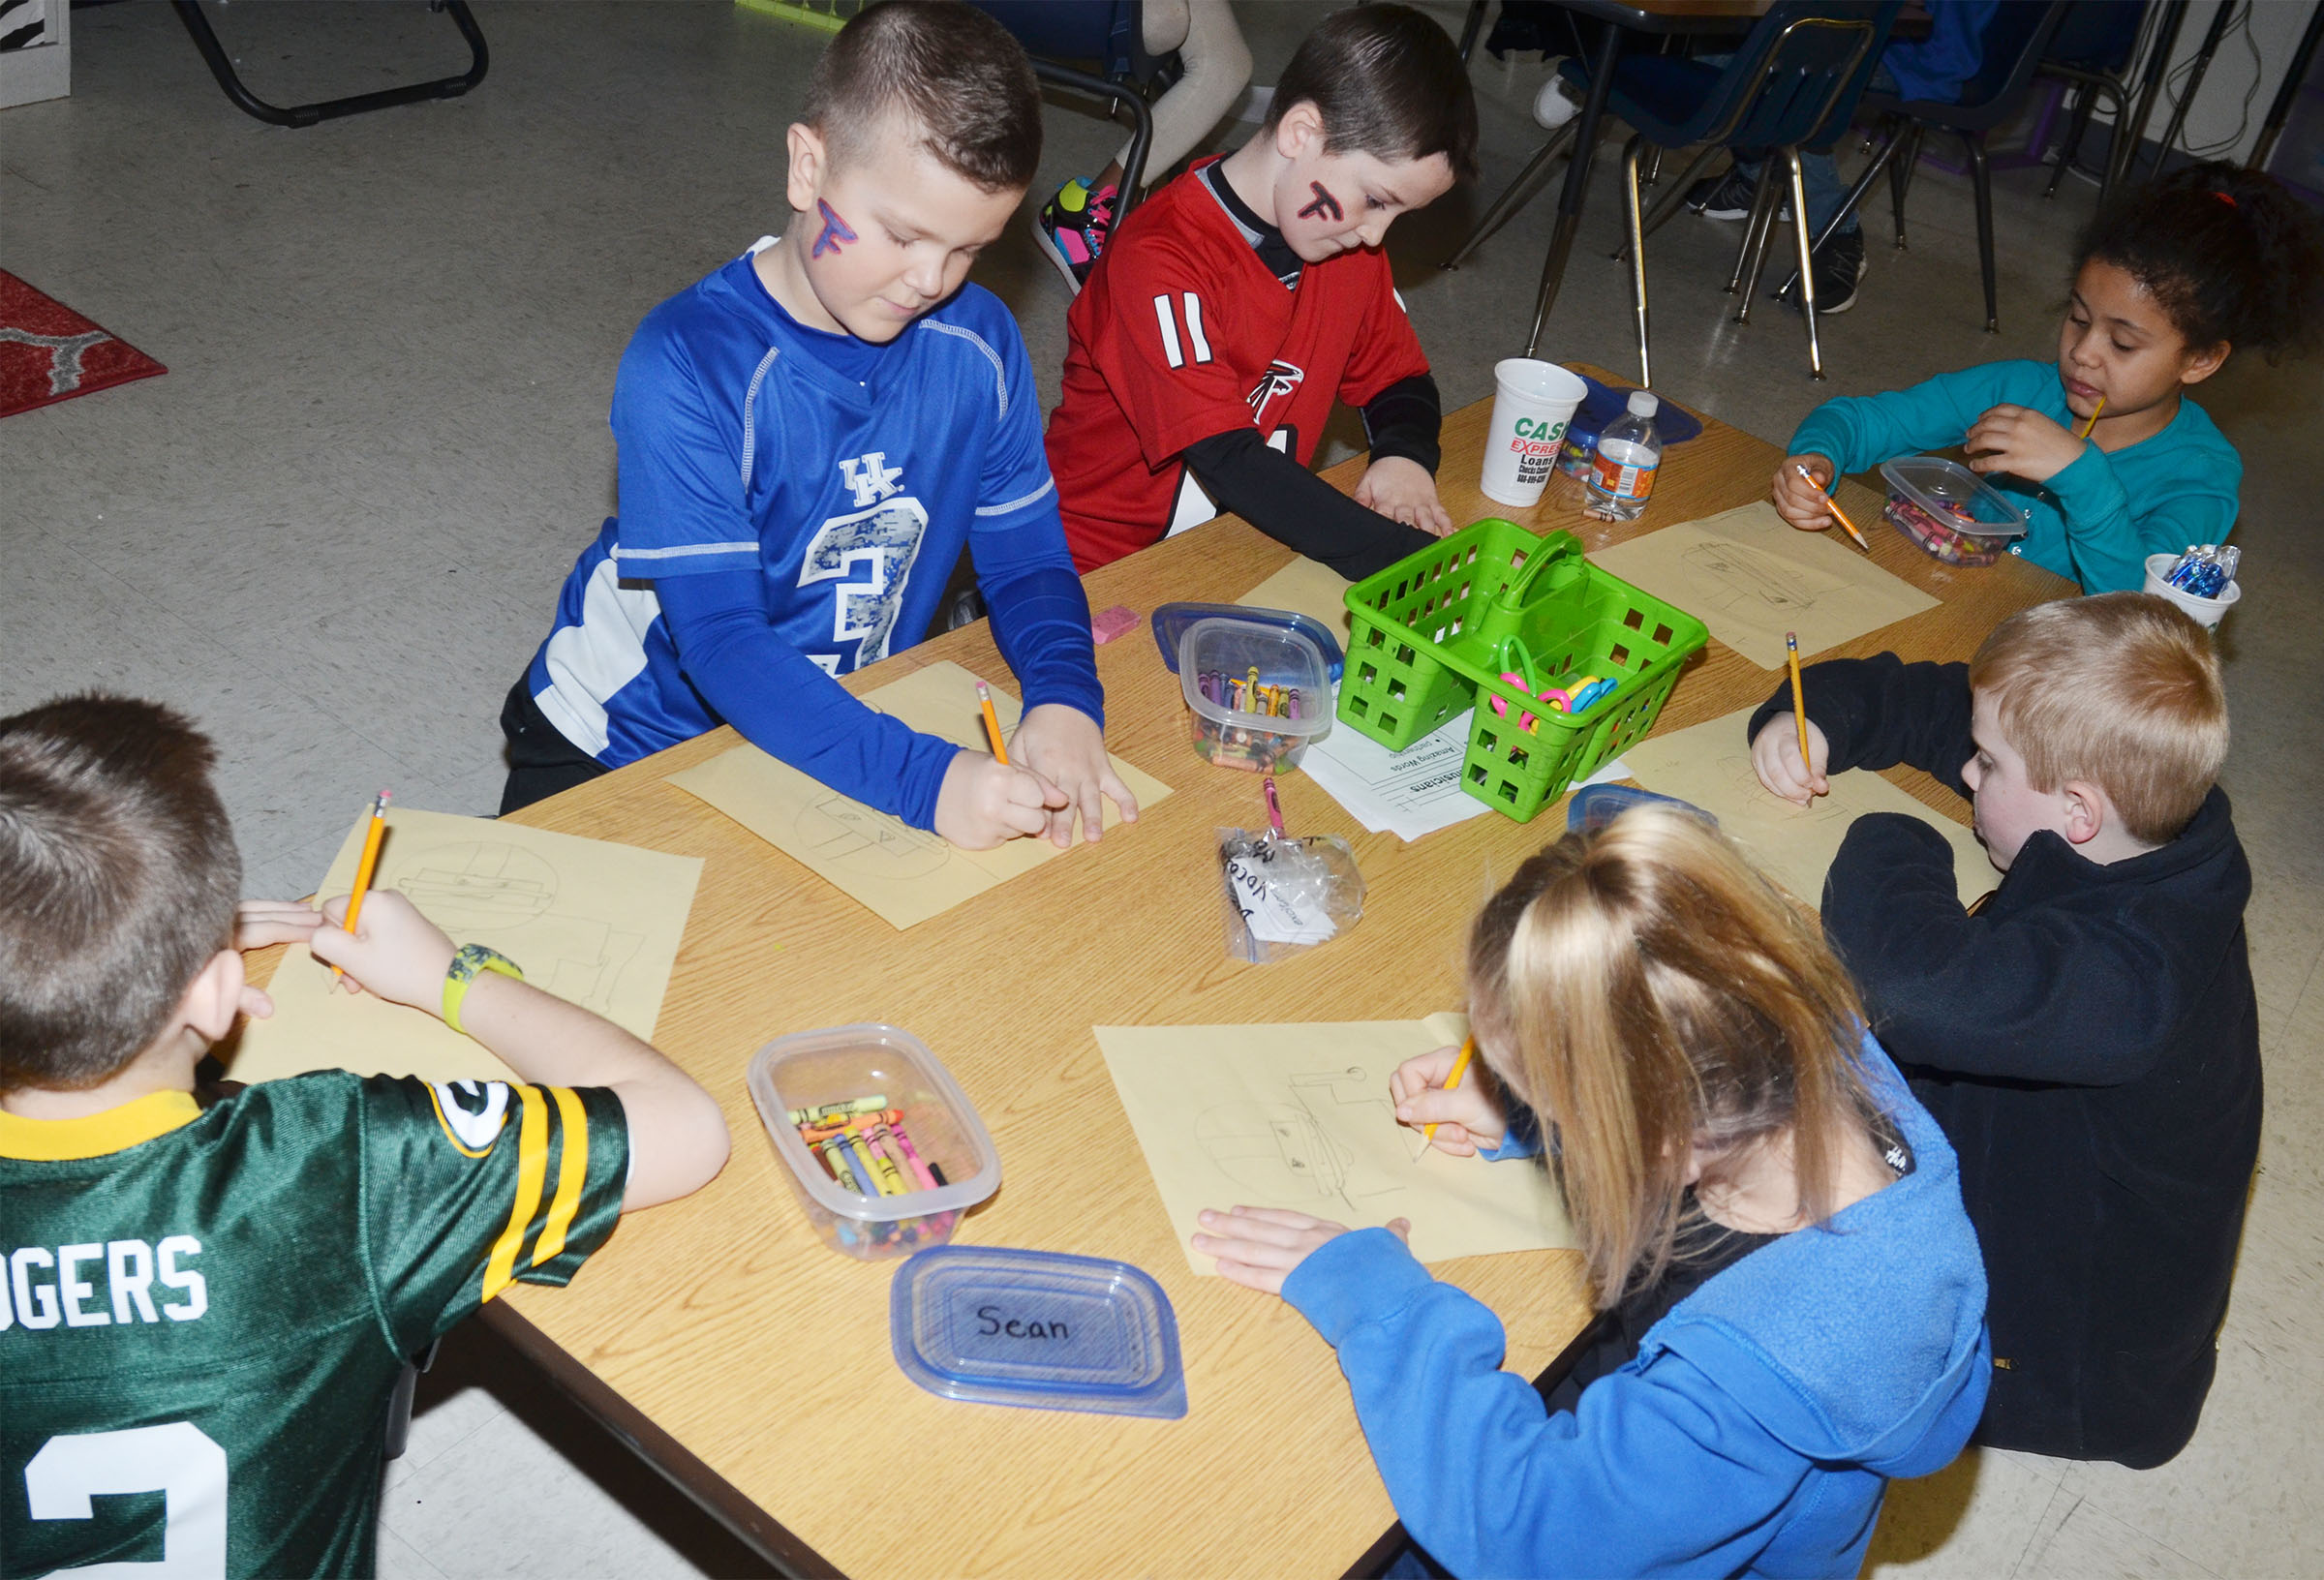 CES second-graders draw football players. Clockwise from left are Lanigan Price, Cayton Lawhorn, Luke Adkins, Alex Wilson, Aidan Bowles and Ava Ellis.